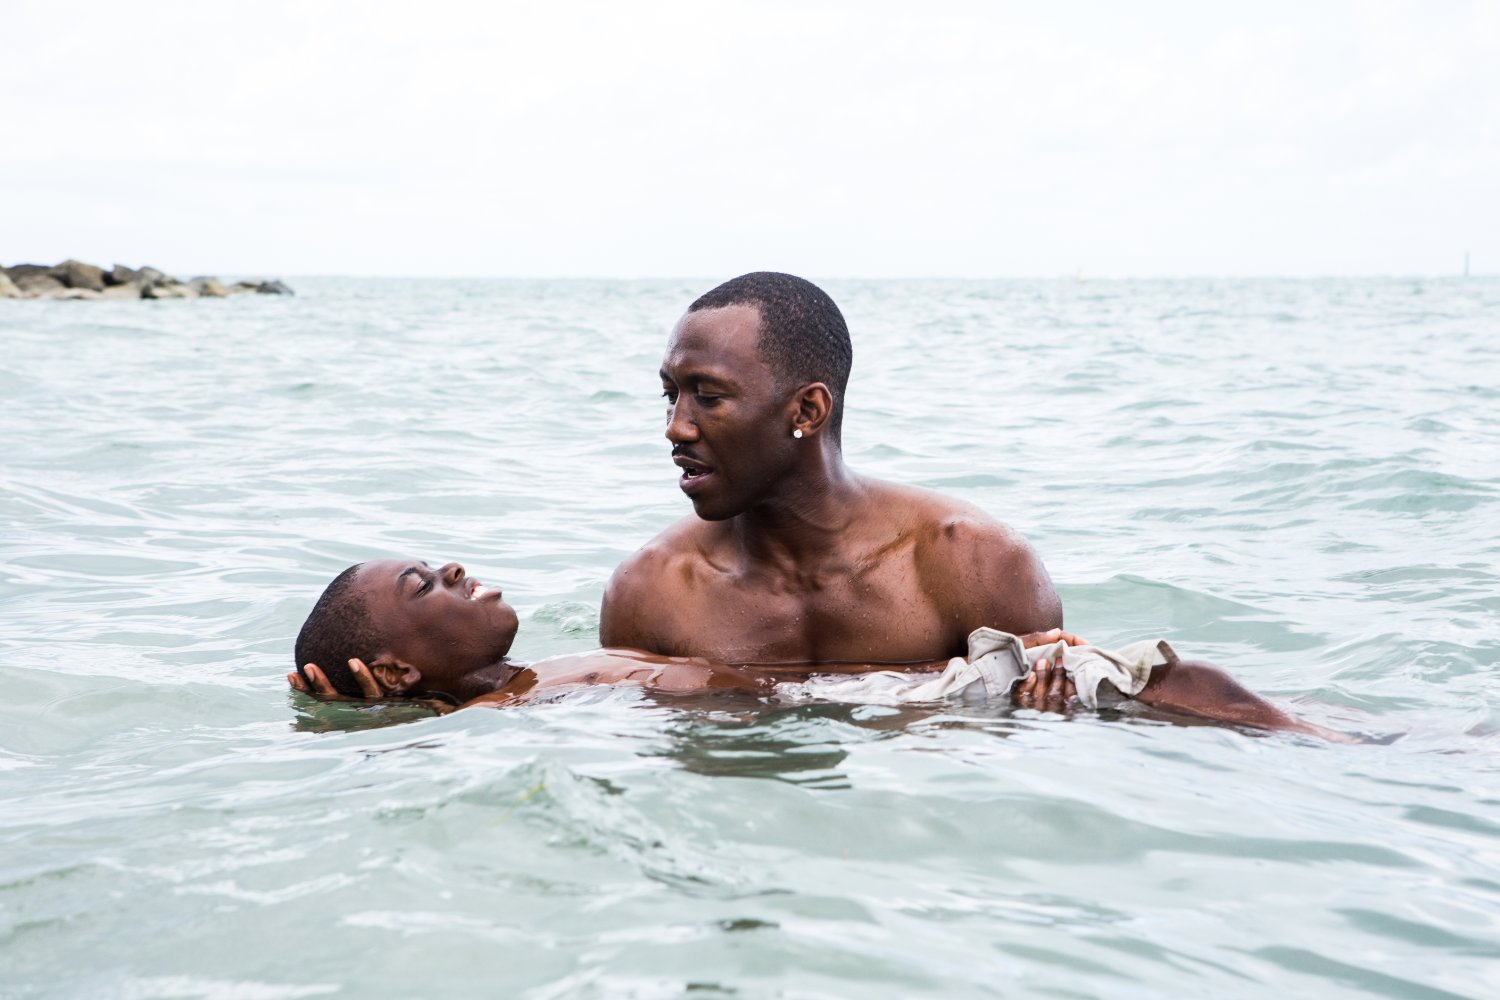 Moonlight: a necessary work of art